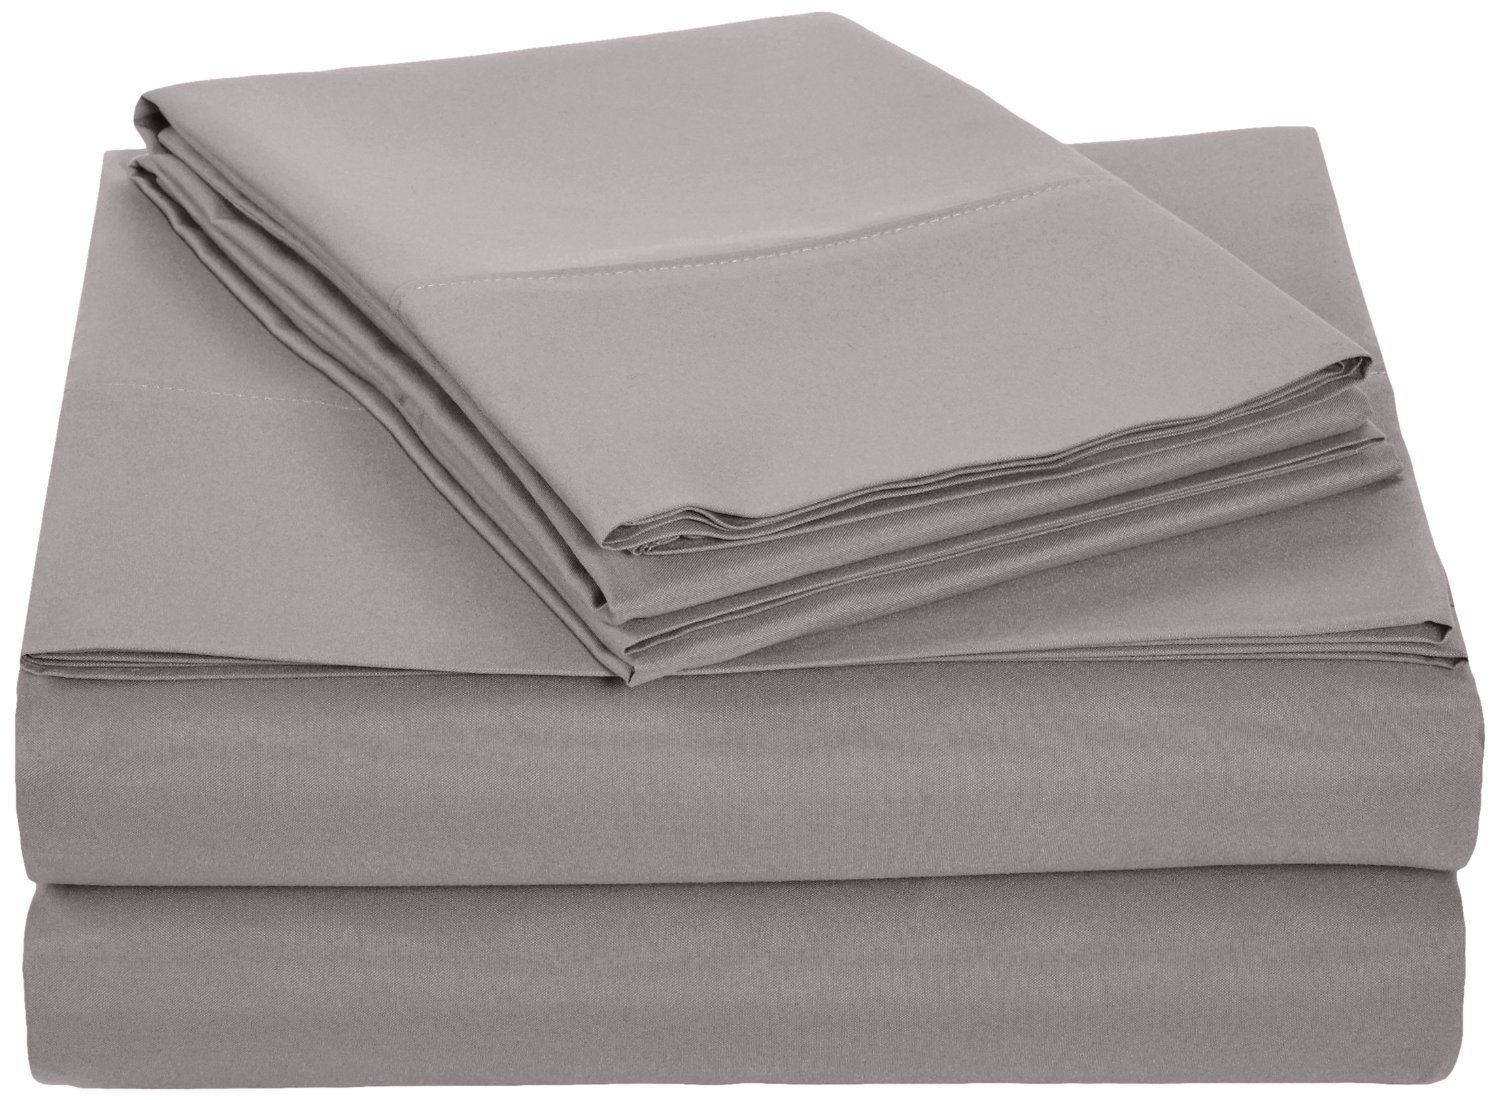 Alurri Bed Sheet Set Wrinkle Fade and Stain Resistant by 2 Pillowcases King, Grey Fitted Sheet Hypoallergenic Hotel Luxury Quality Microfiber Flat Sheet - 4 Piece Bedding Set